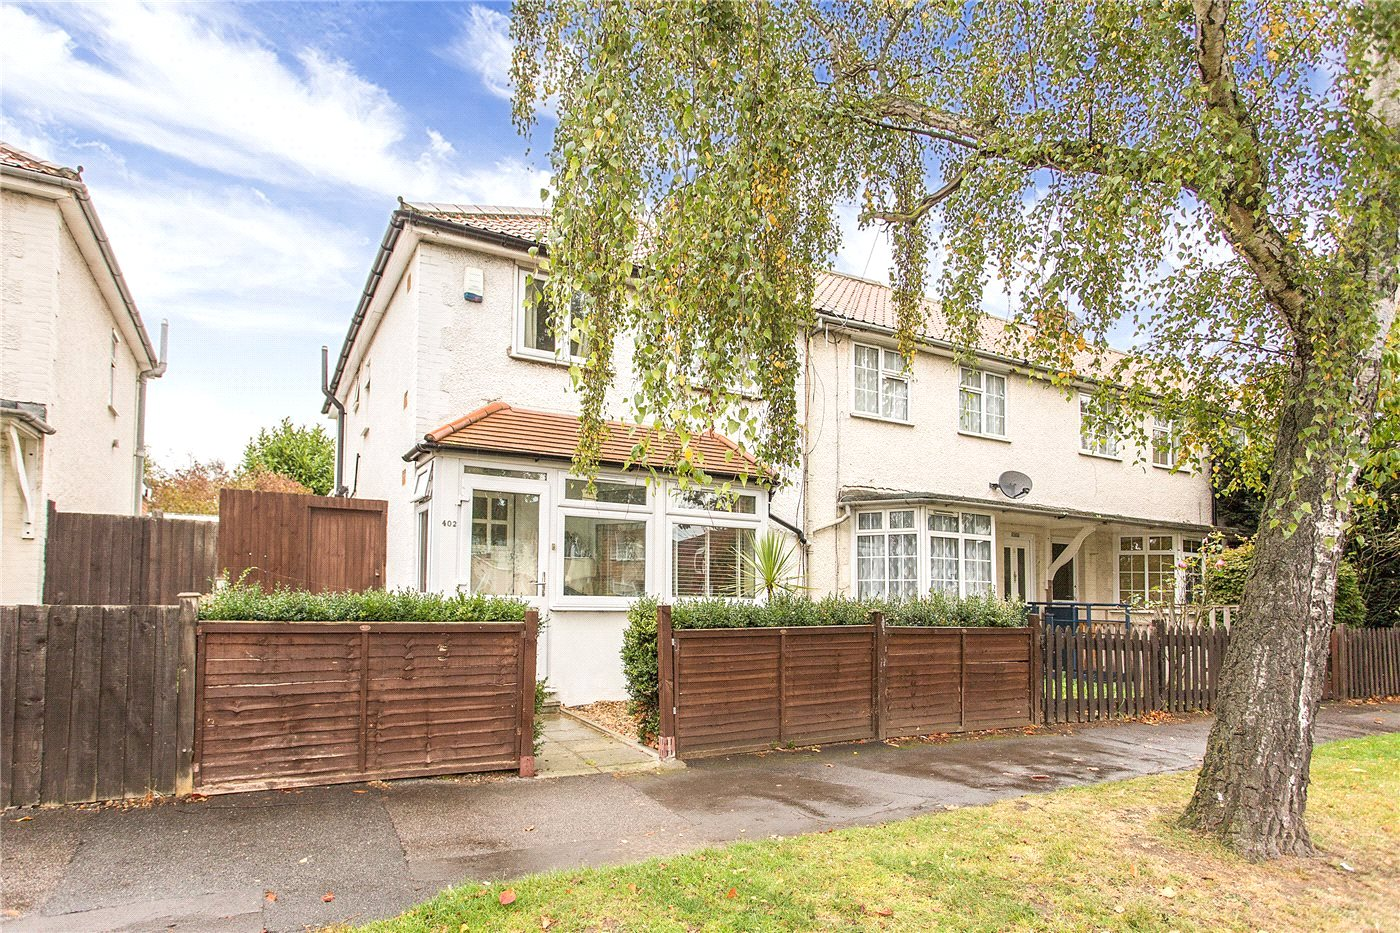 3 Bedrooms End Of Terrace House for sale in Baker Street, Enfield, EN1